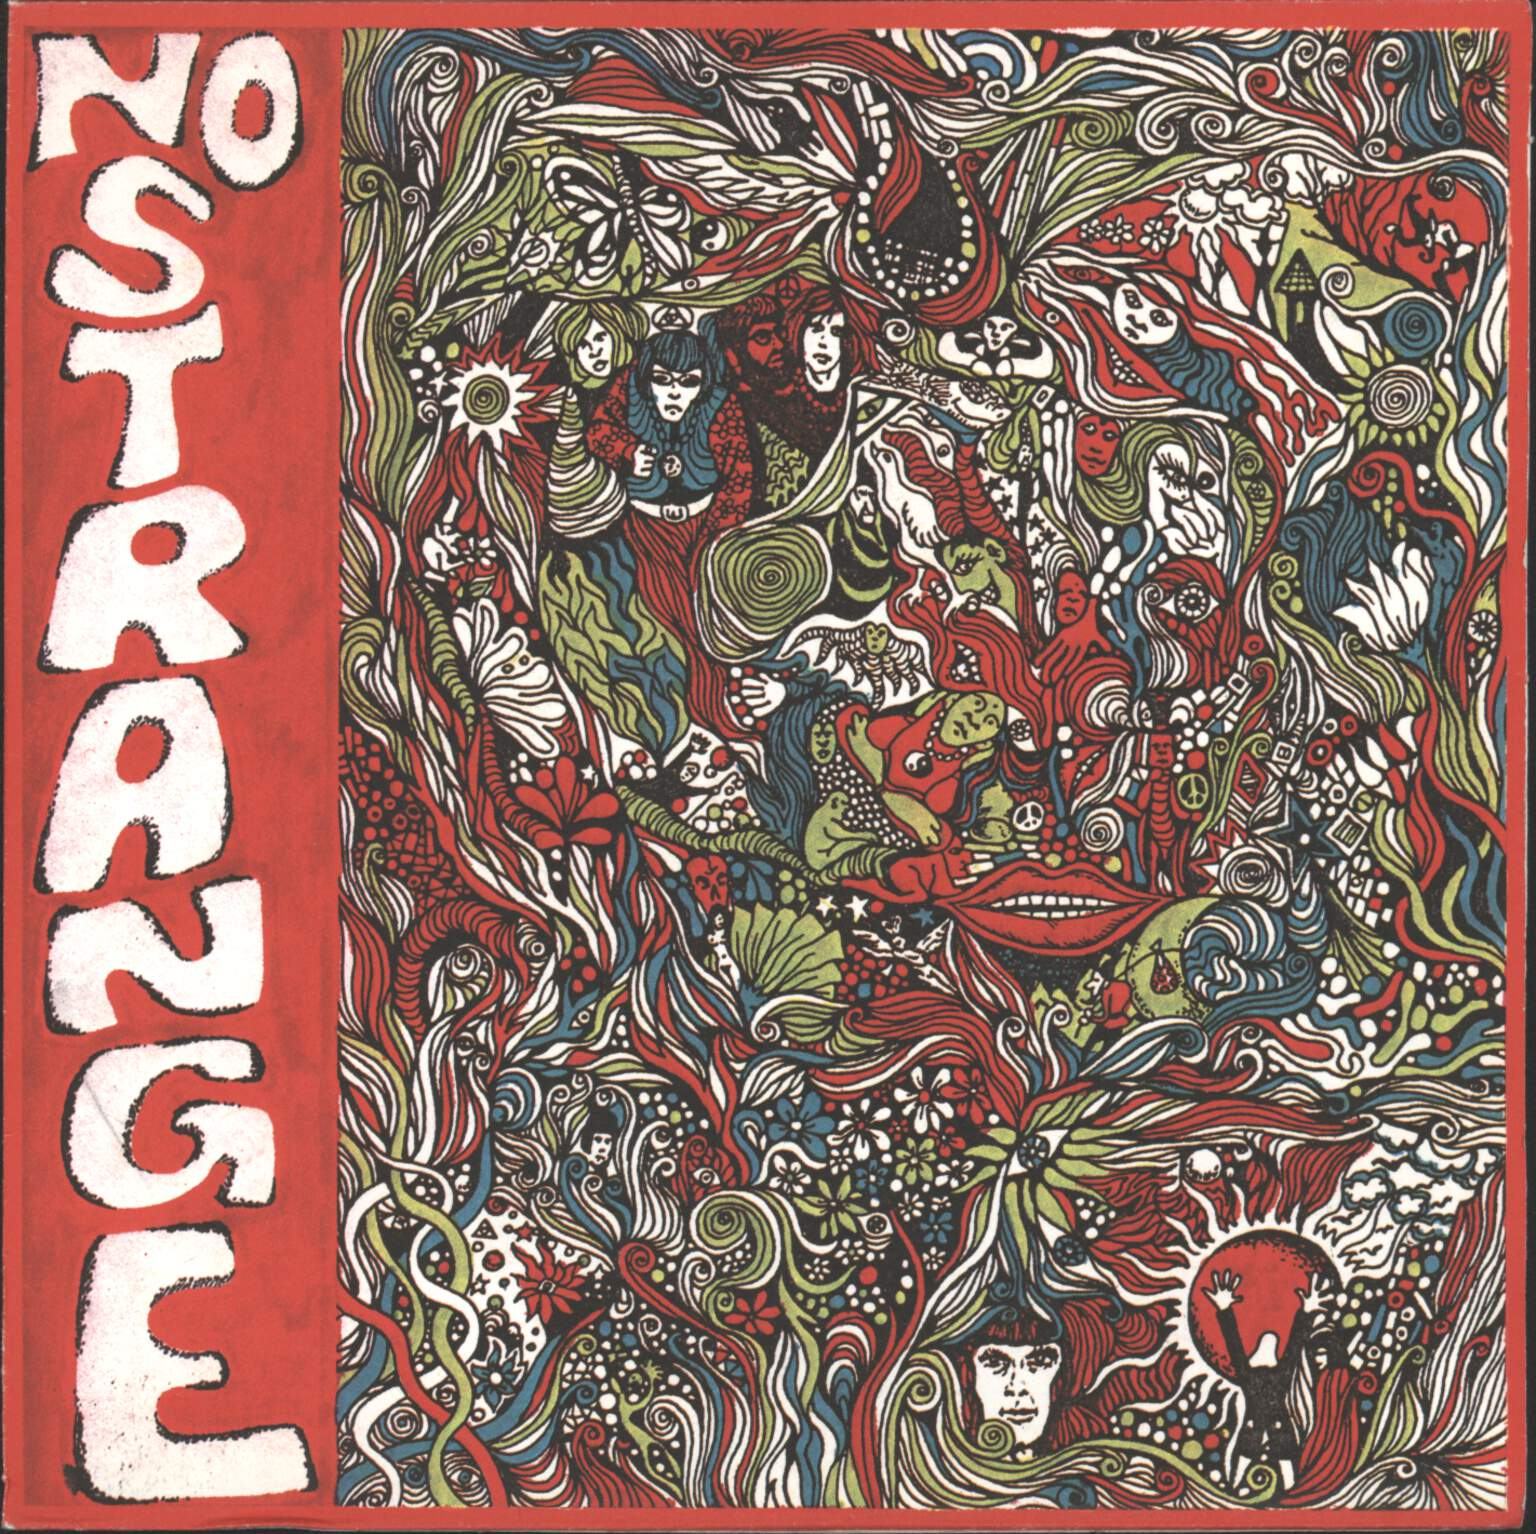 "No Strange: White Bird / Fiori Risplendenti, 7"" Single (Vinyl)"